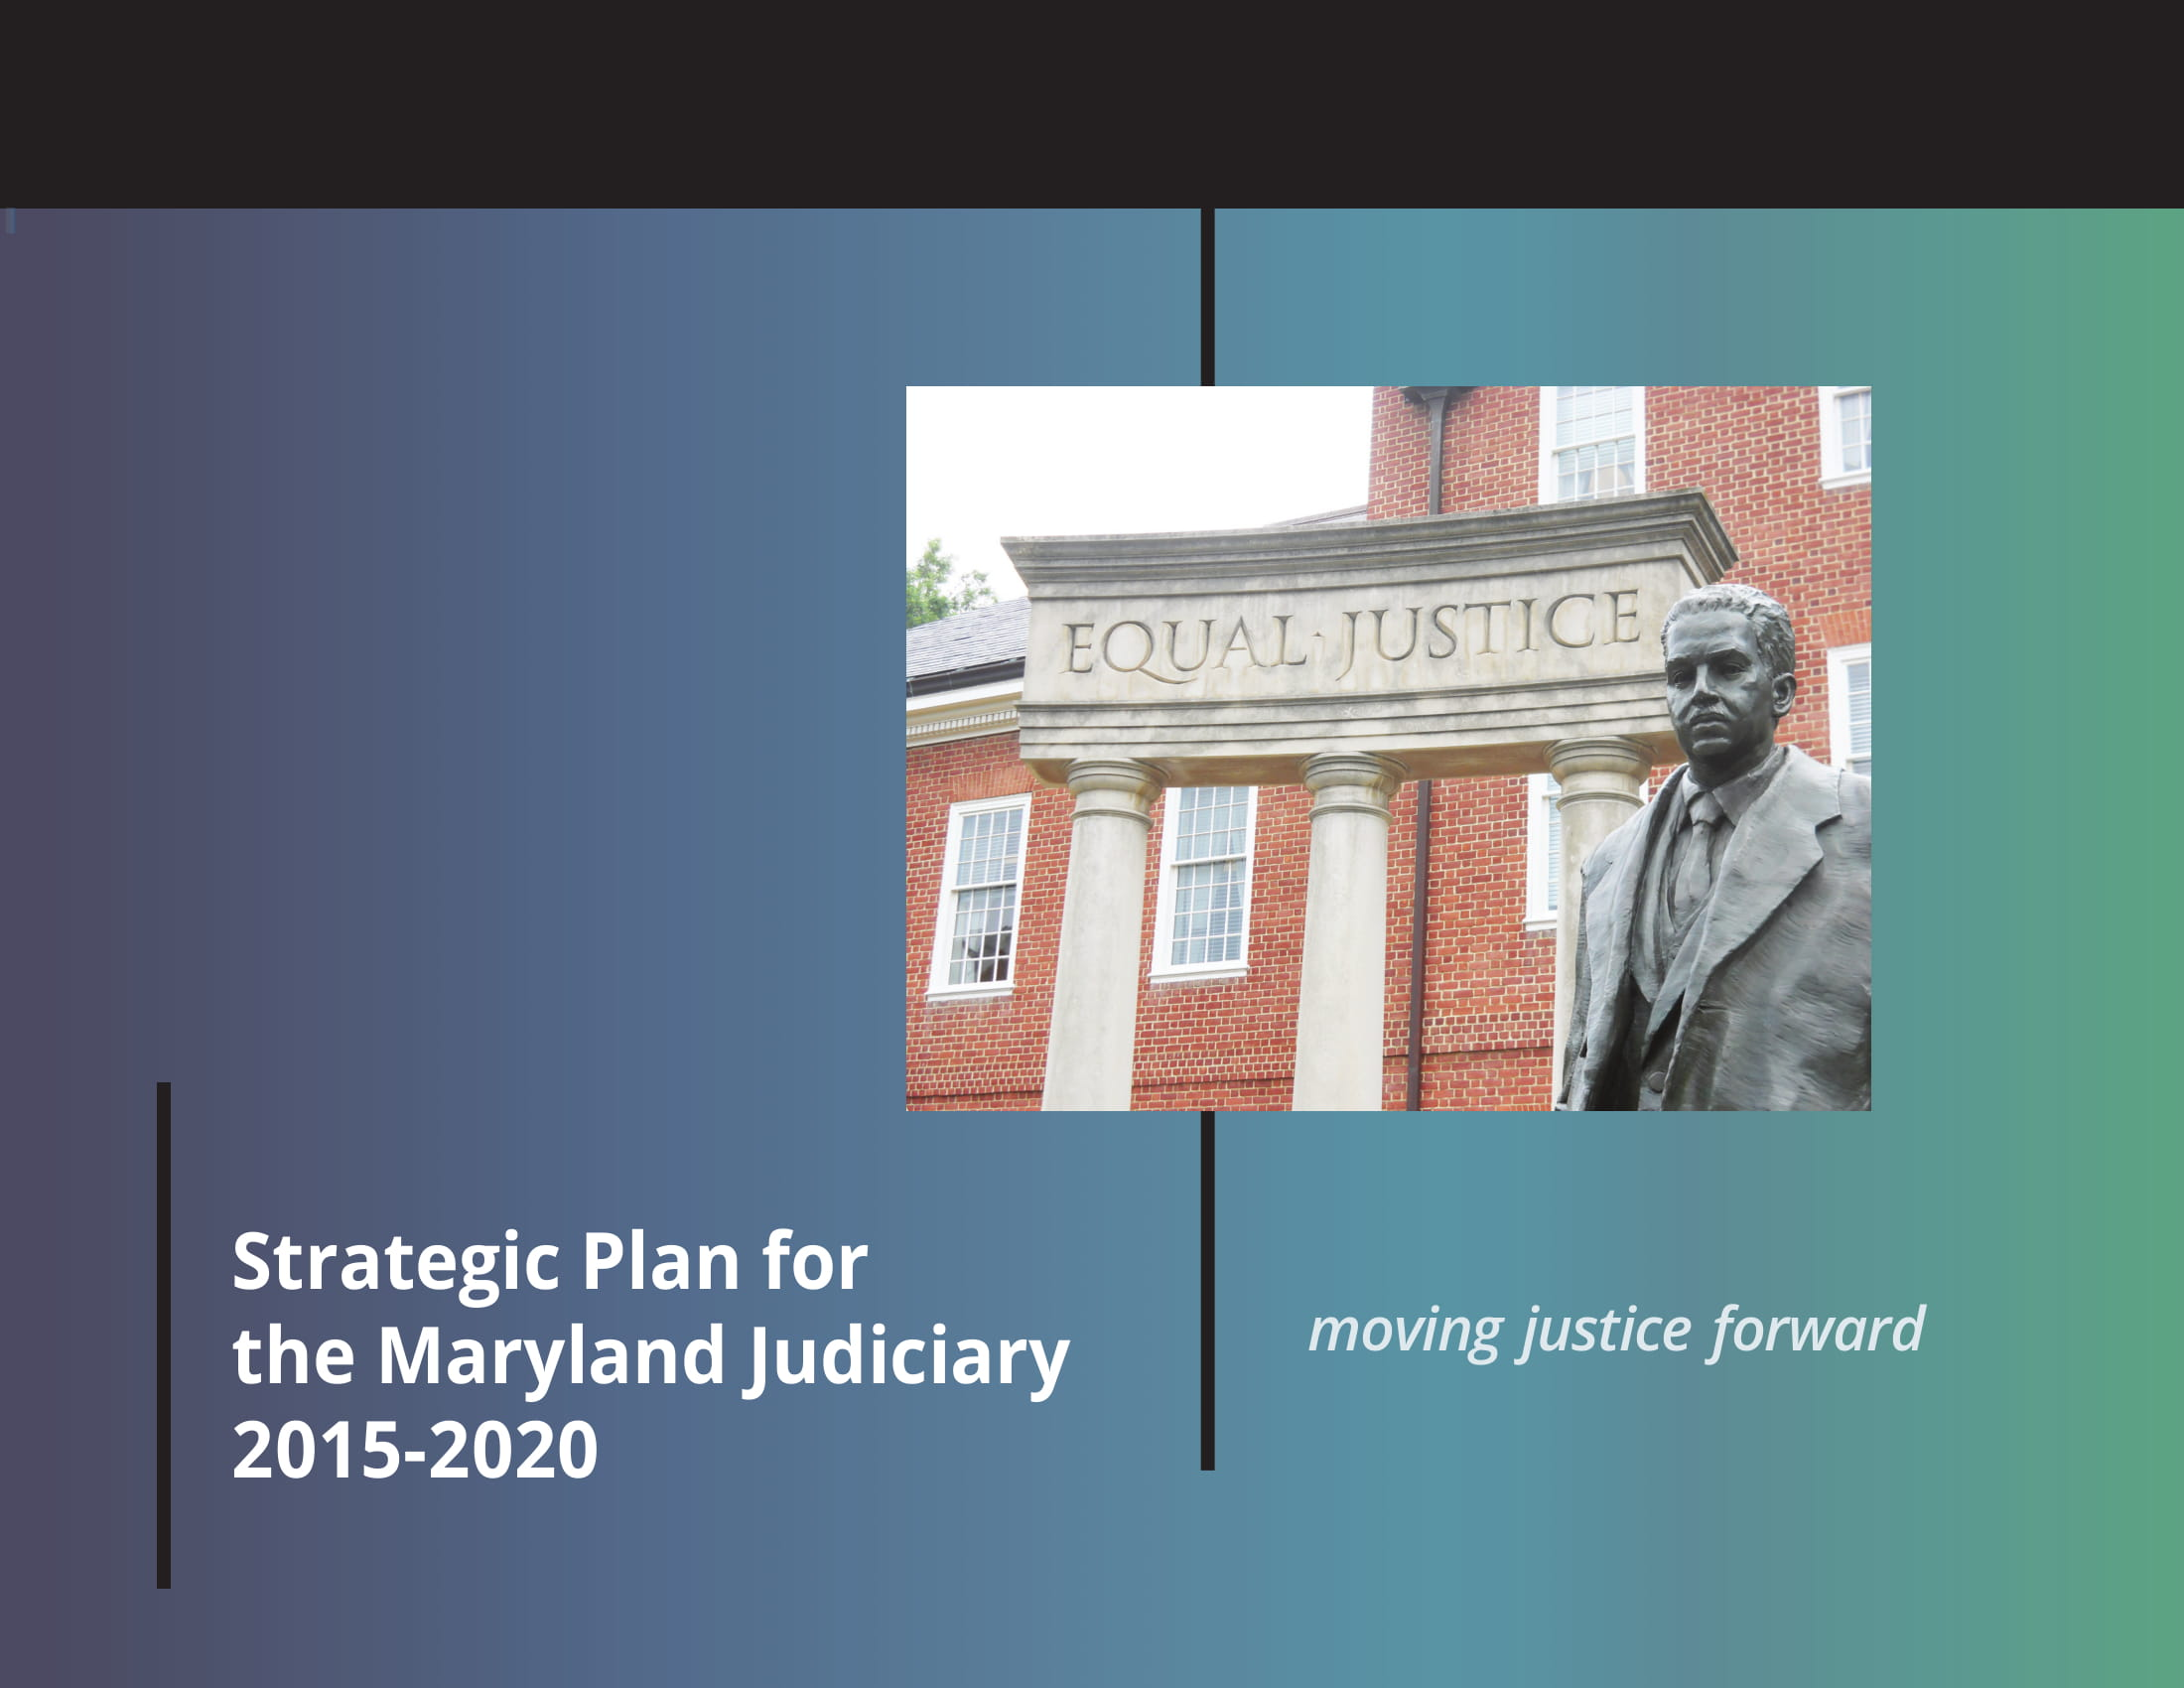 legal judiciary strategic plan example 01